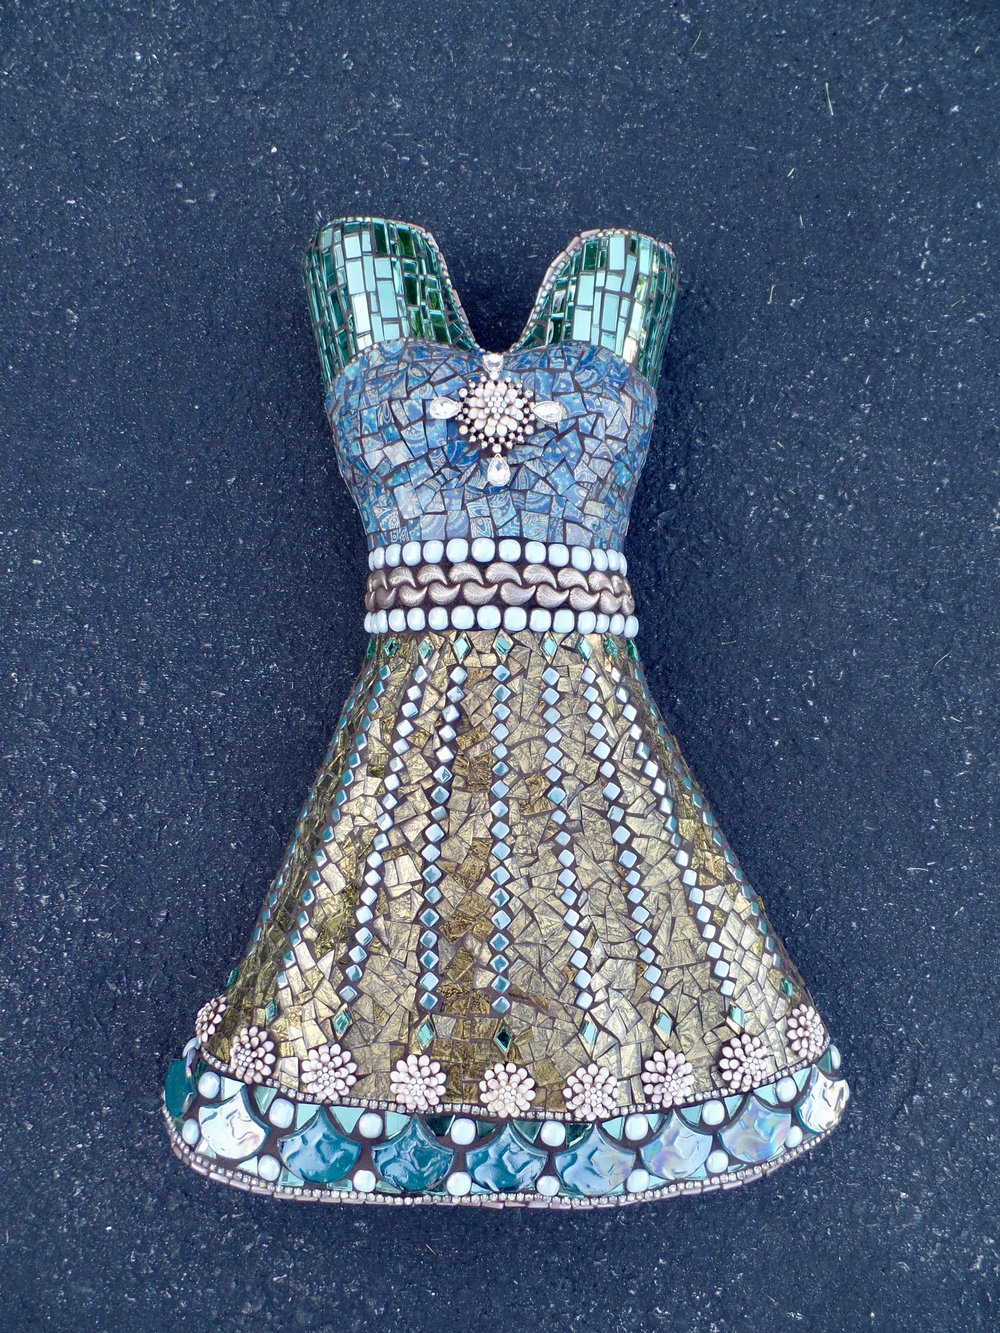 I made this mosaic dress form from sculpting wire, rigid wrap and styrofoam. The gold tone necklace at the waistband is one I purchased over 20 years ago. The blue stones/gems around the waistband and bottom border glow in the dark.I really had a difficult time deciding upon grout color. My perfection gene was surfacing so I just listened to my intuition.